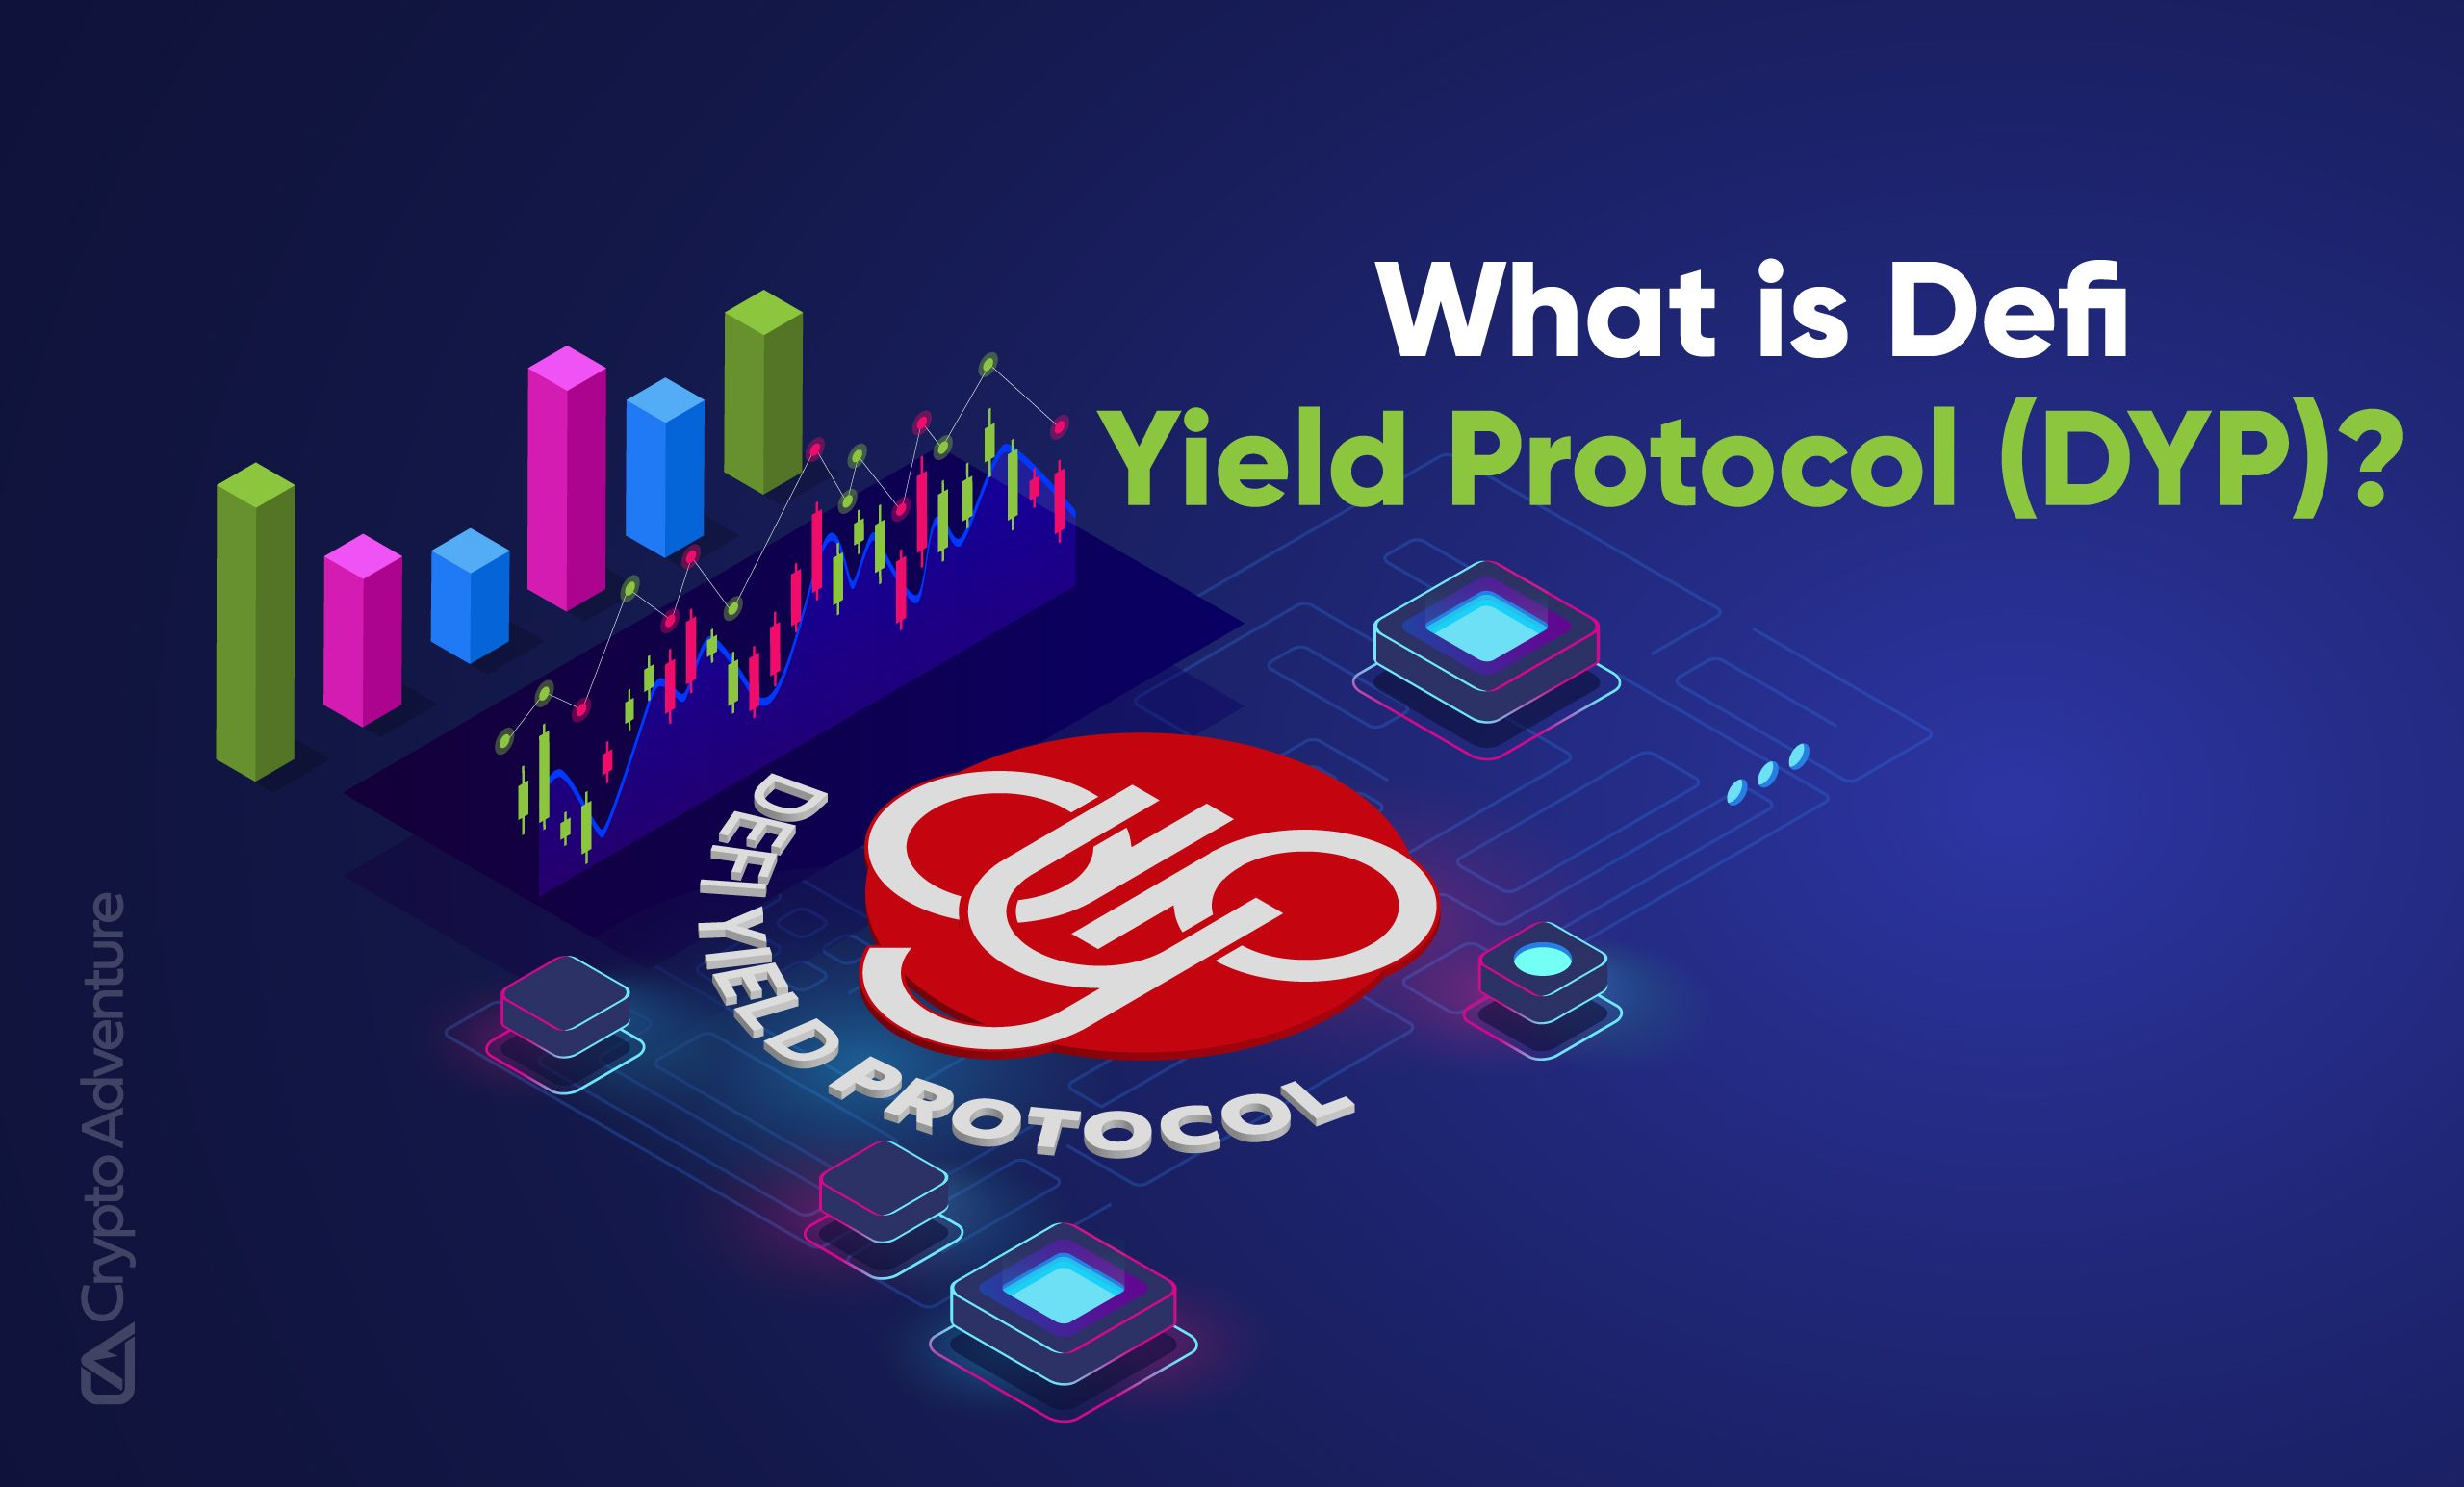 /defi-yield-protocol-a-review-xv3w33u1 feature image